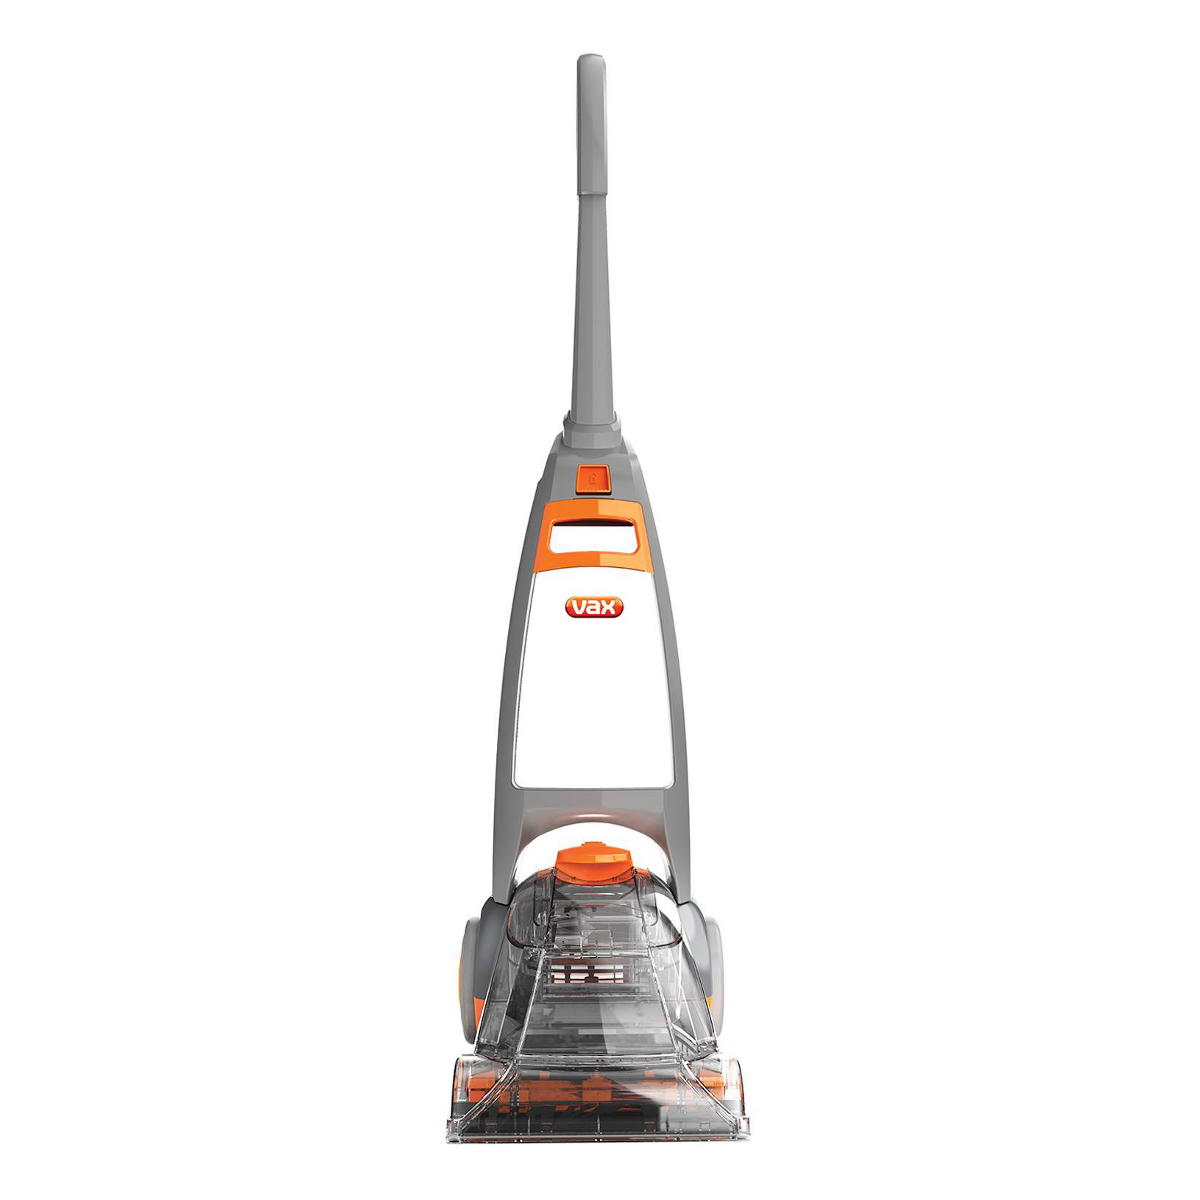 Vax W91rsba 700w Rapide Spring Clean Carpet Cleaner In